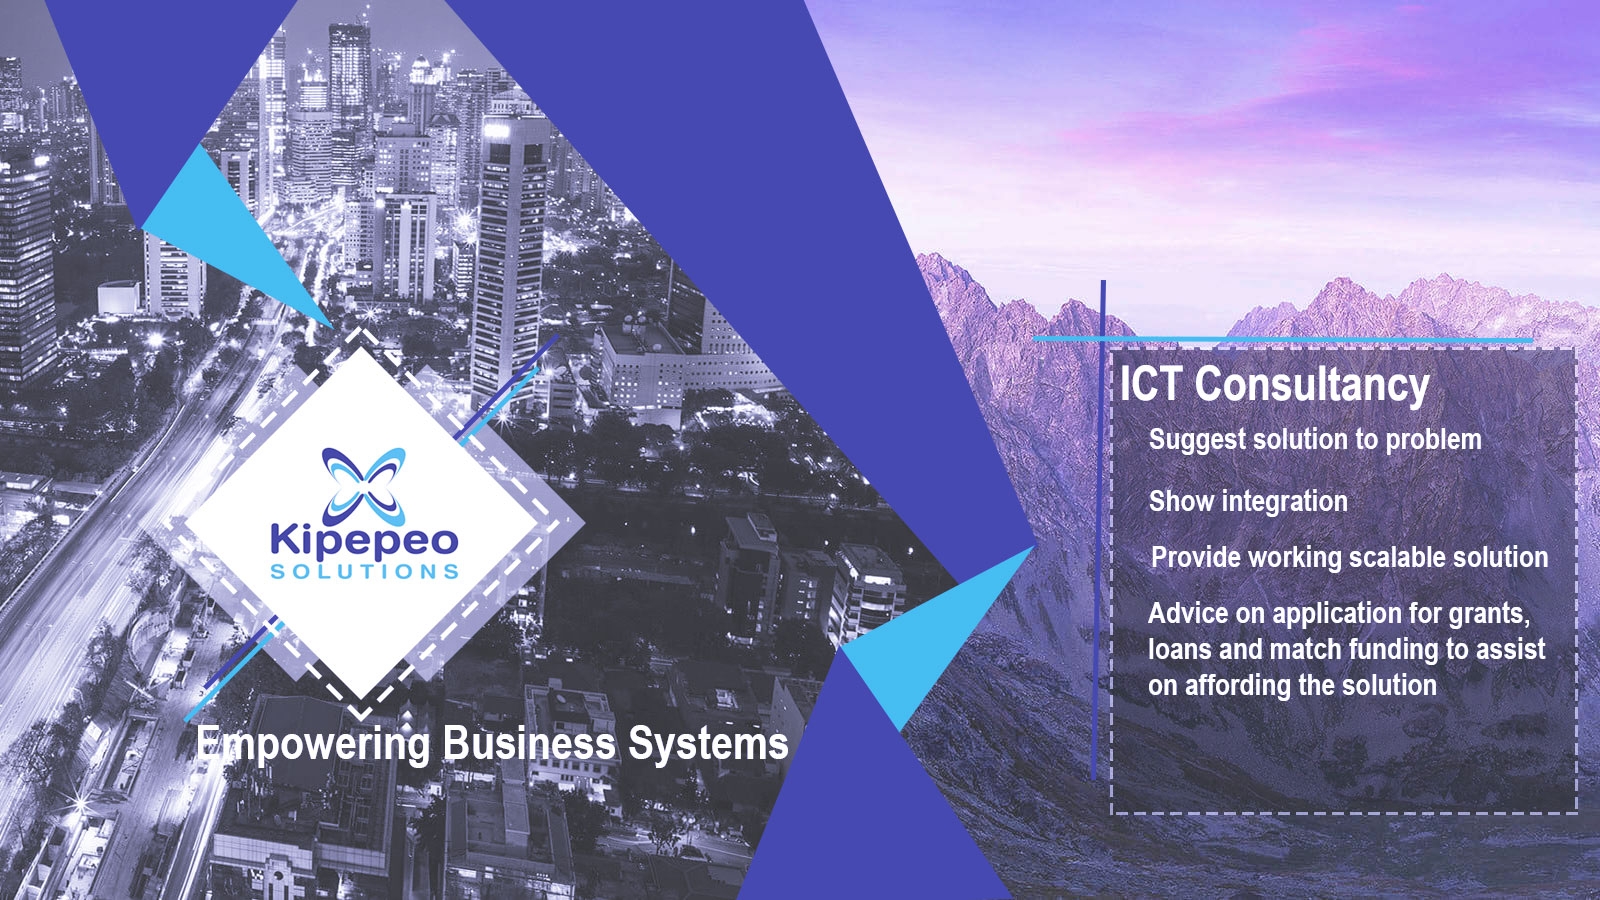 Kipepeo Solutions ICT Consultancy